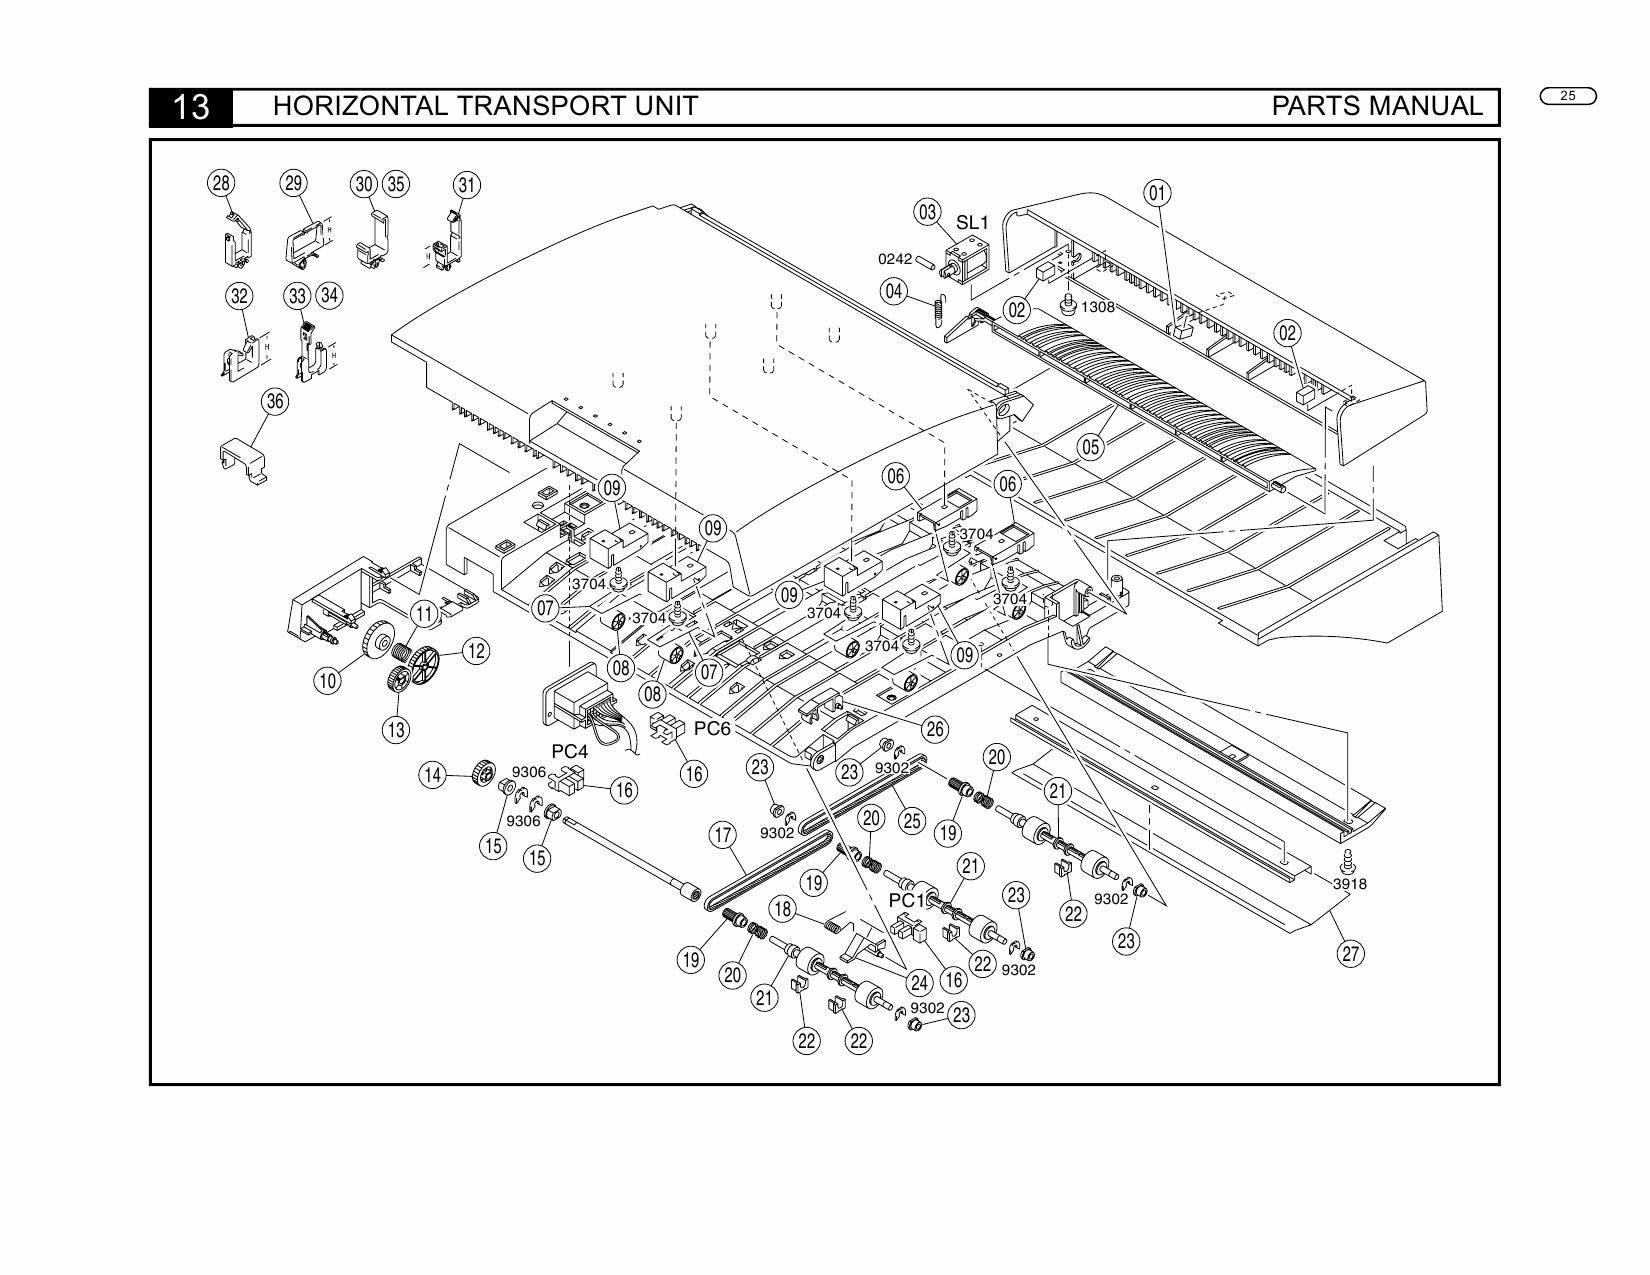 Konica-Minolta Options FN-504 Parts Manual-5